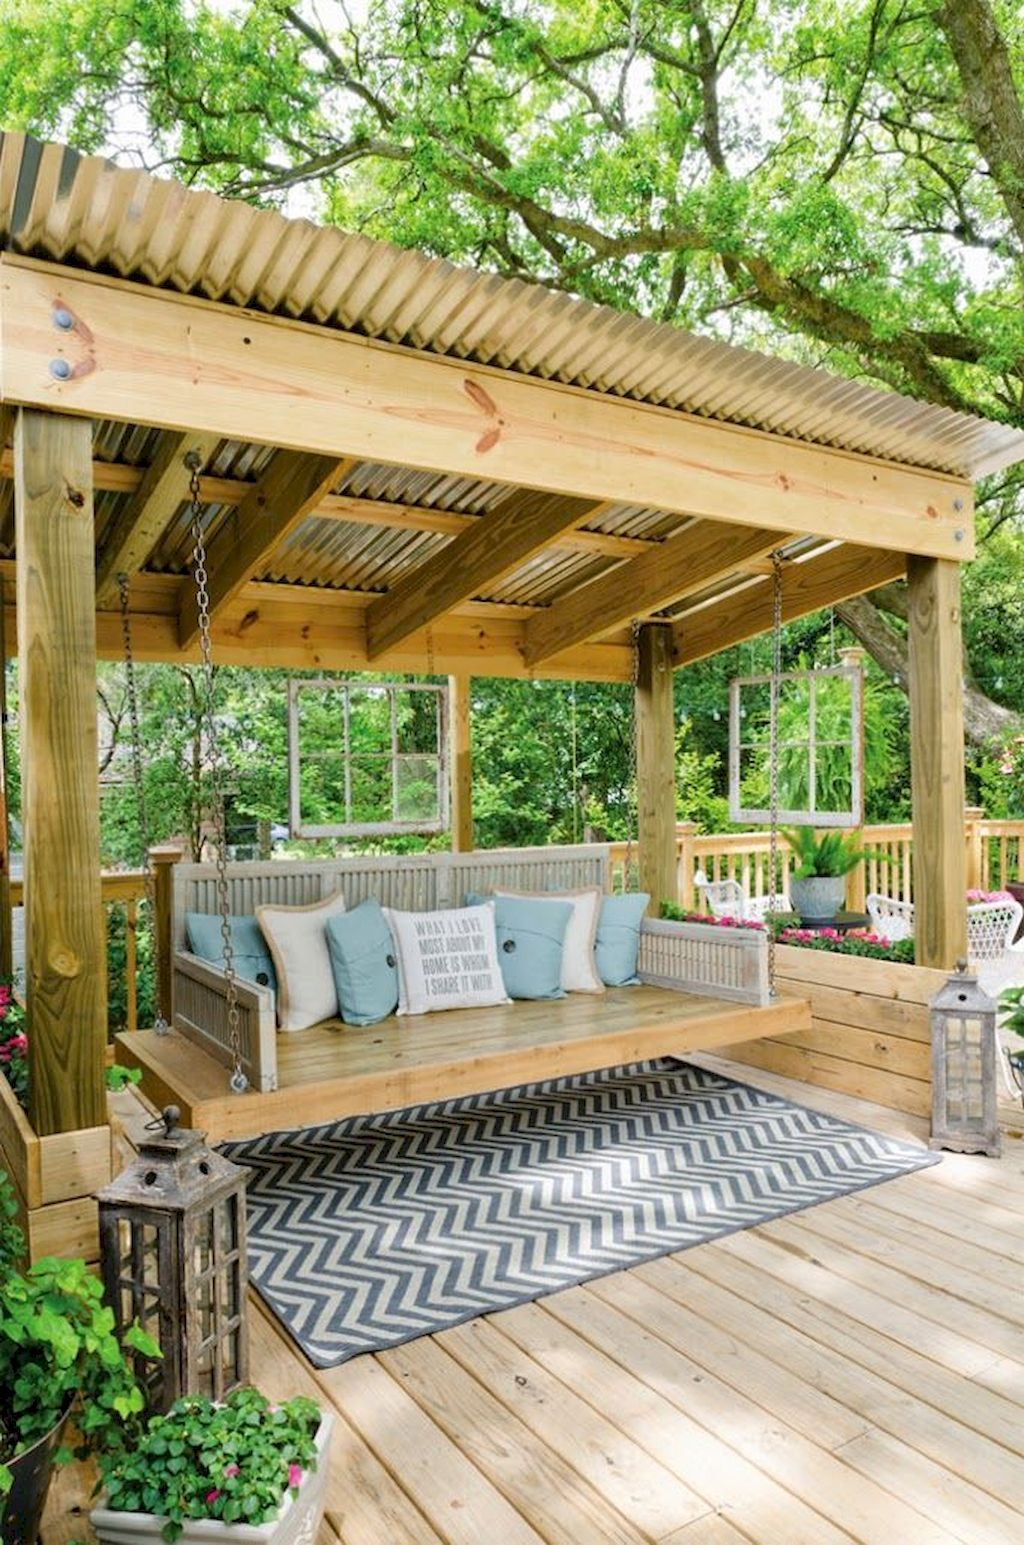 85 Easy Diy Backyard Seating Area Ideas On A Budget Crowdecor Com Backyard Backyard Patio Backyard Seating